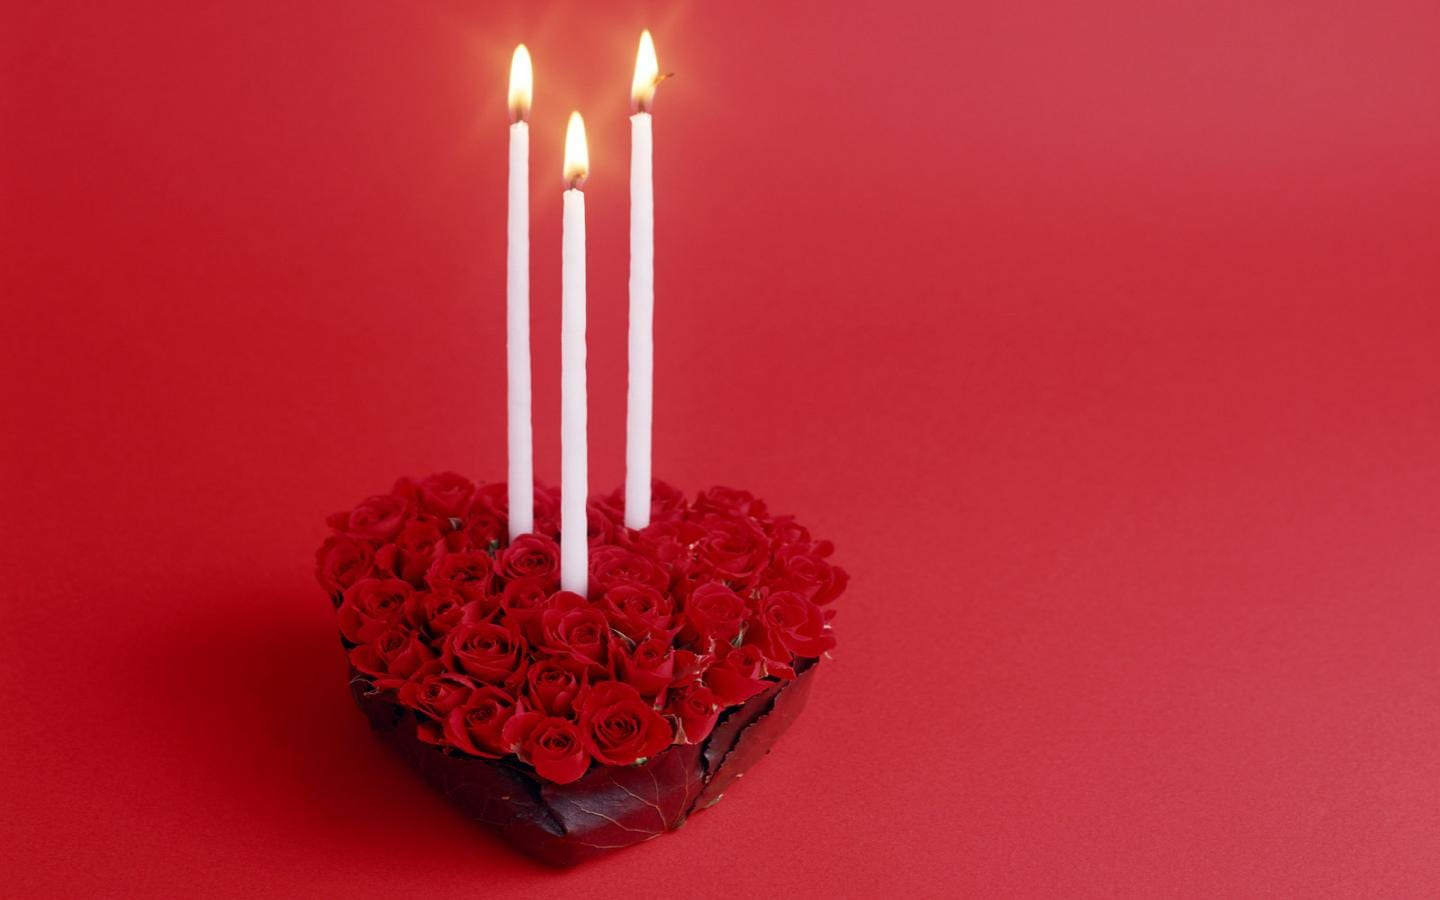 red-rose-heart-and-candles,1440x900,50973